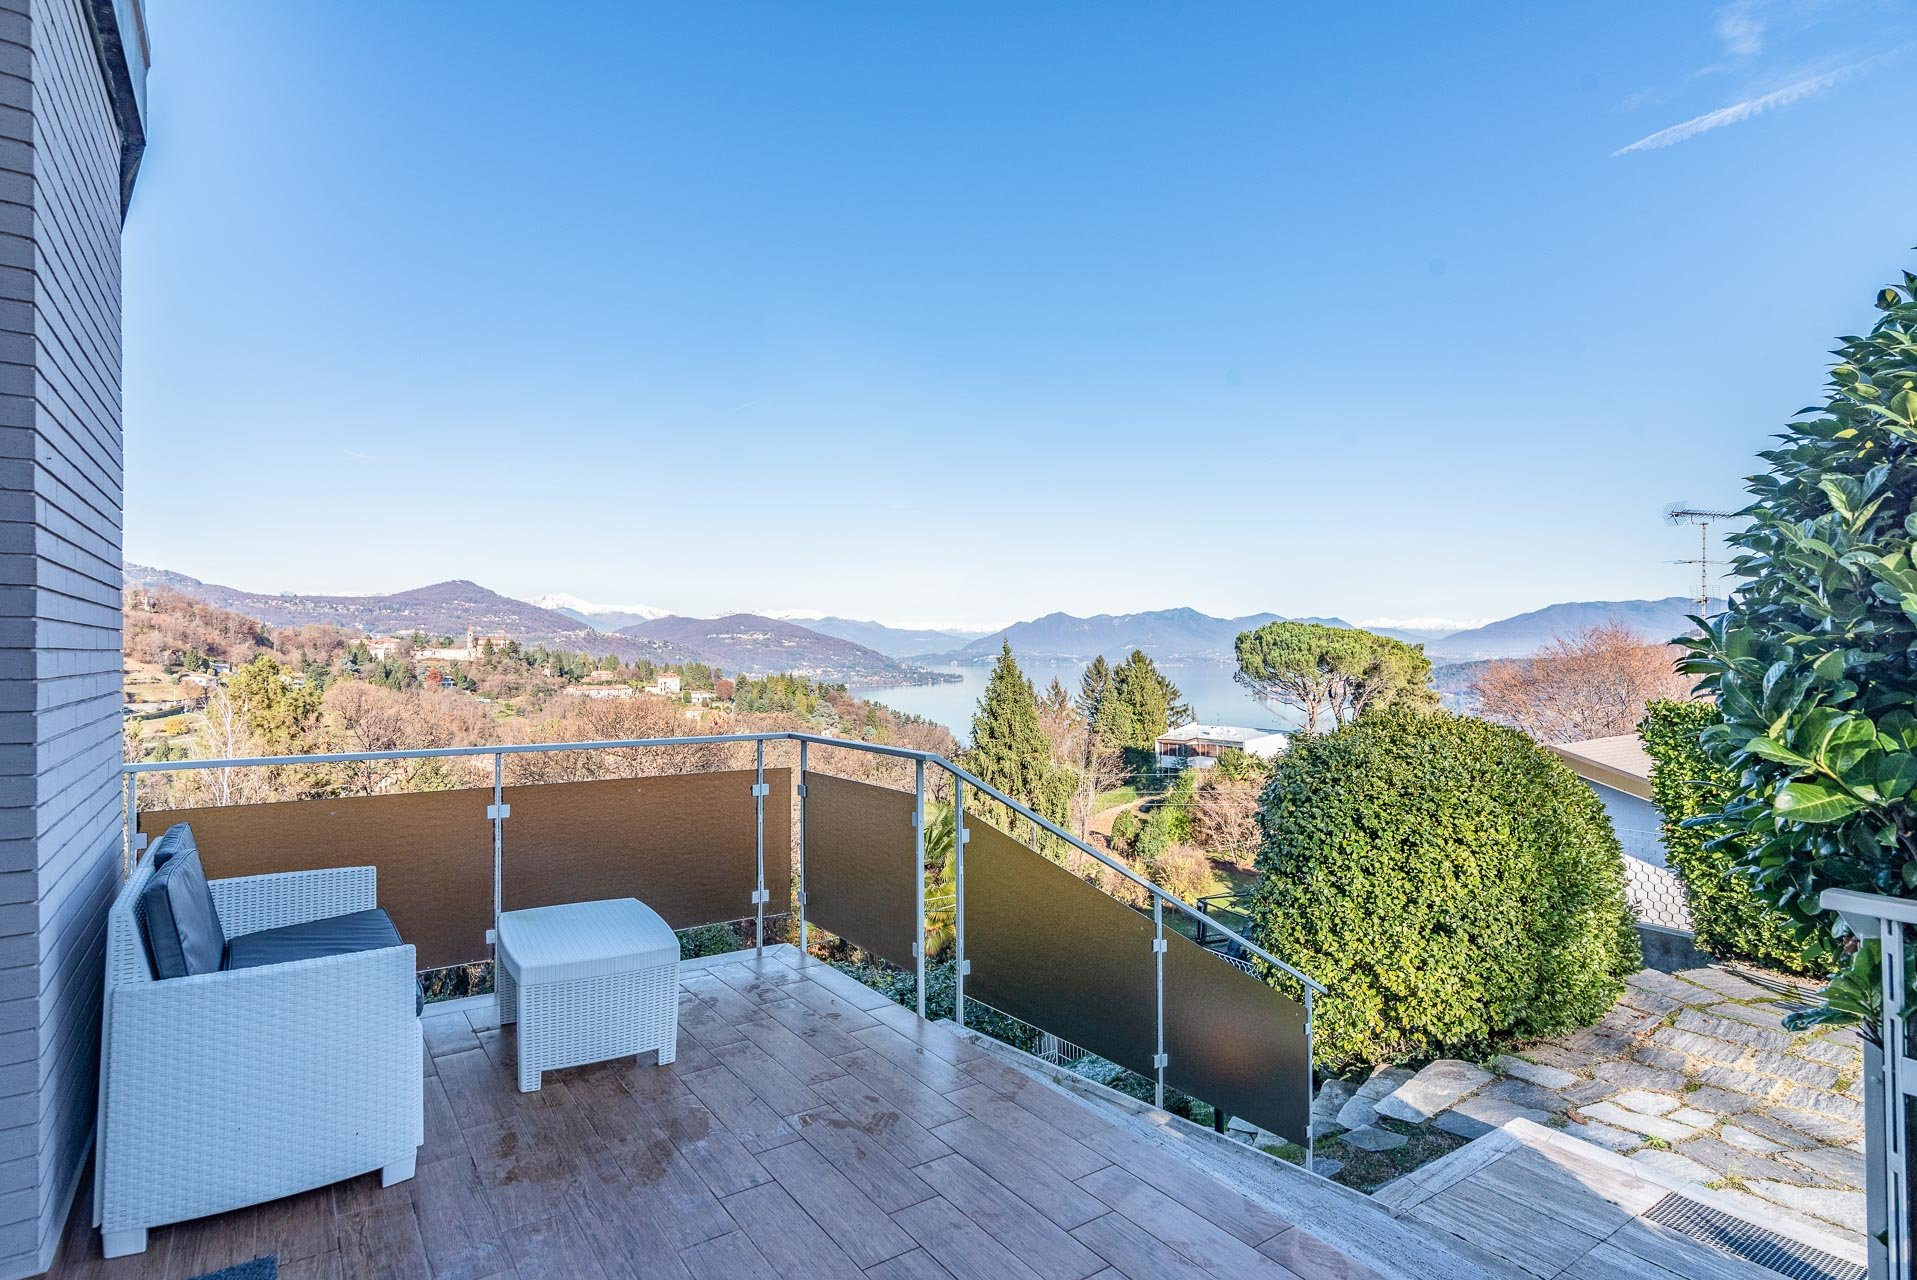 Modern Villa for sale near the center of Arona